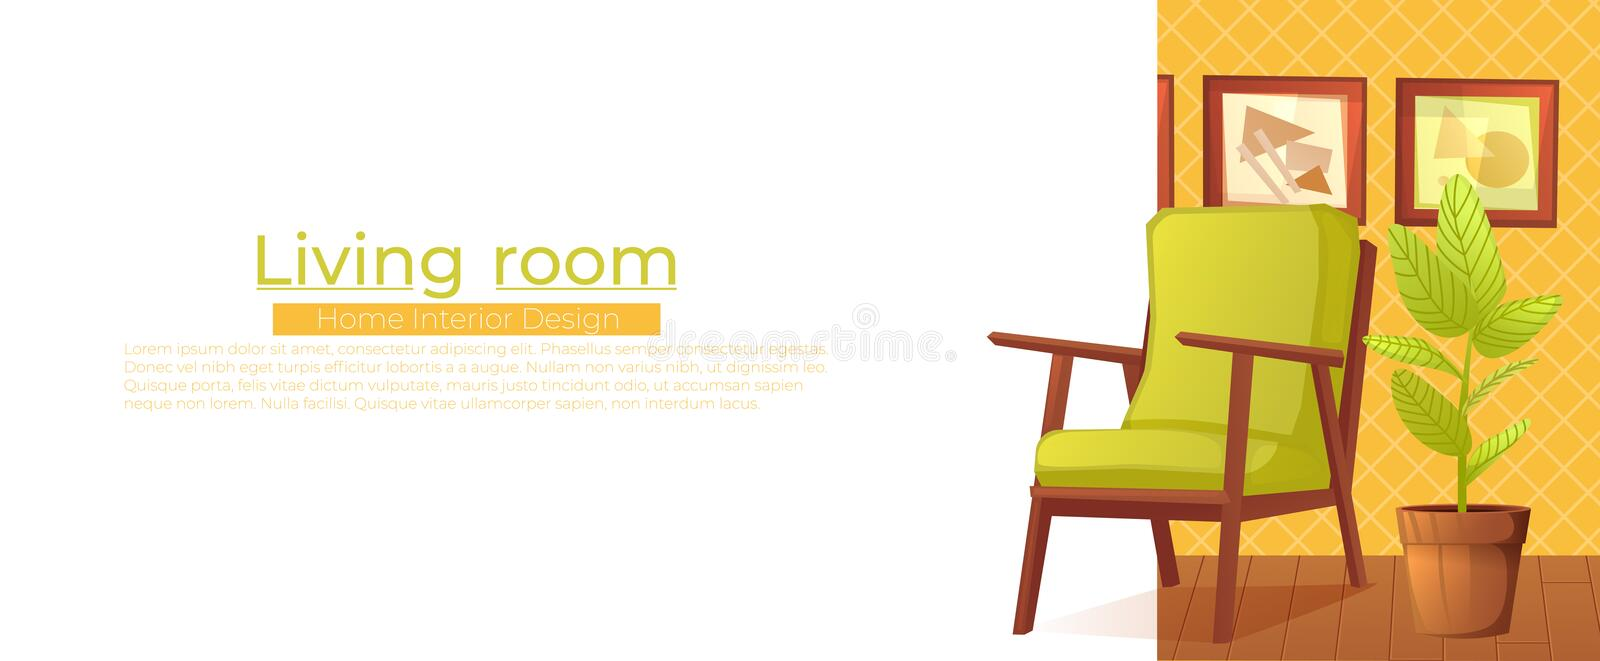 Living room home interior design banner. Comfortable armchair with a plant in a room with retro wallpaper. stock illustration